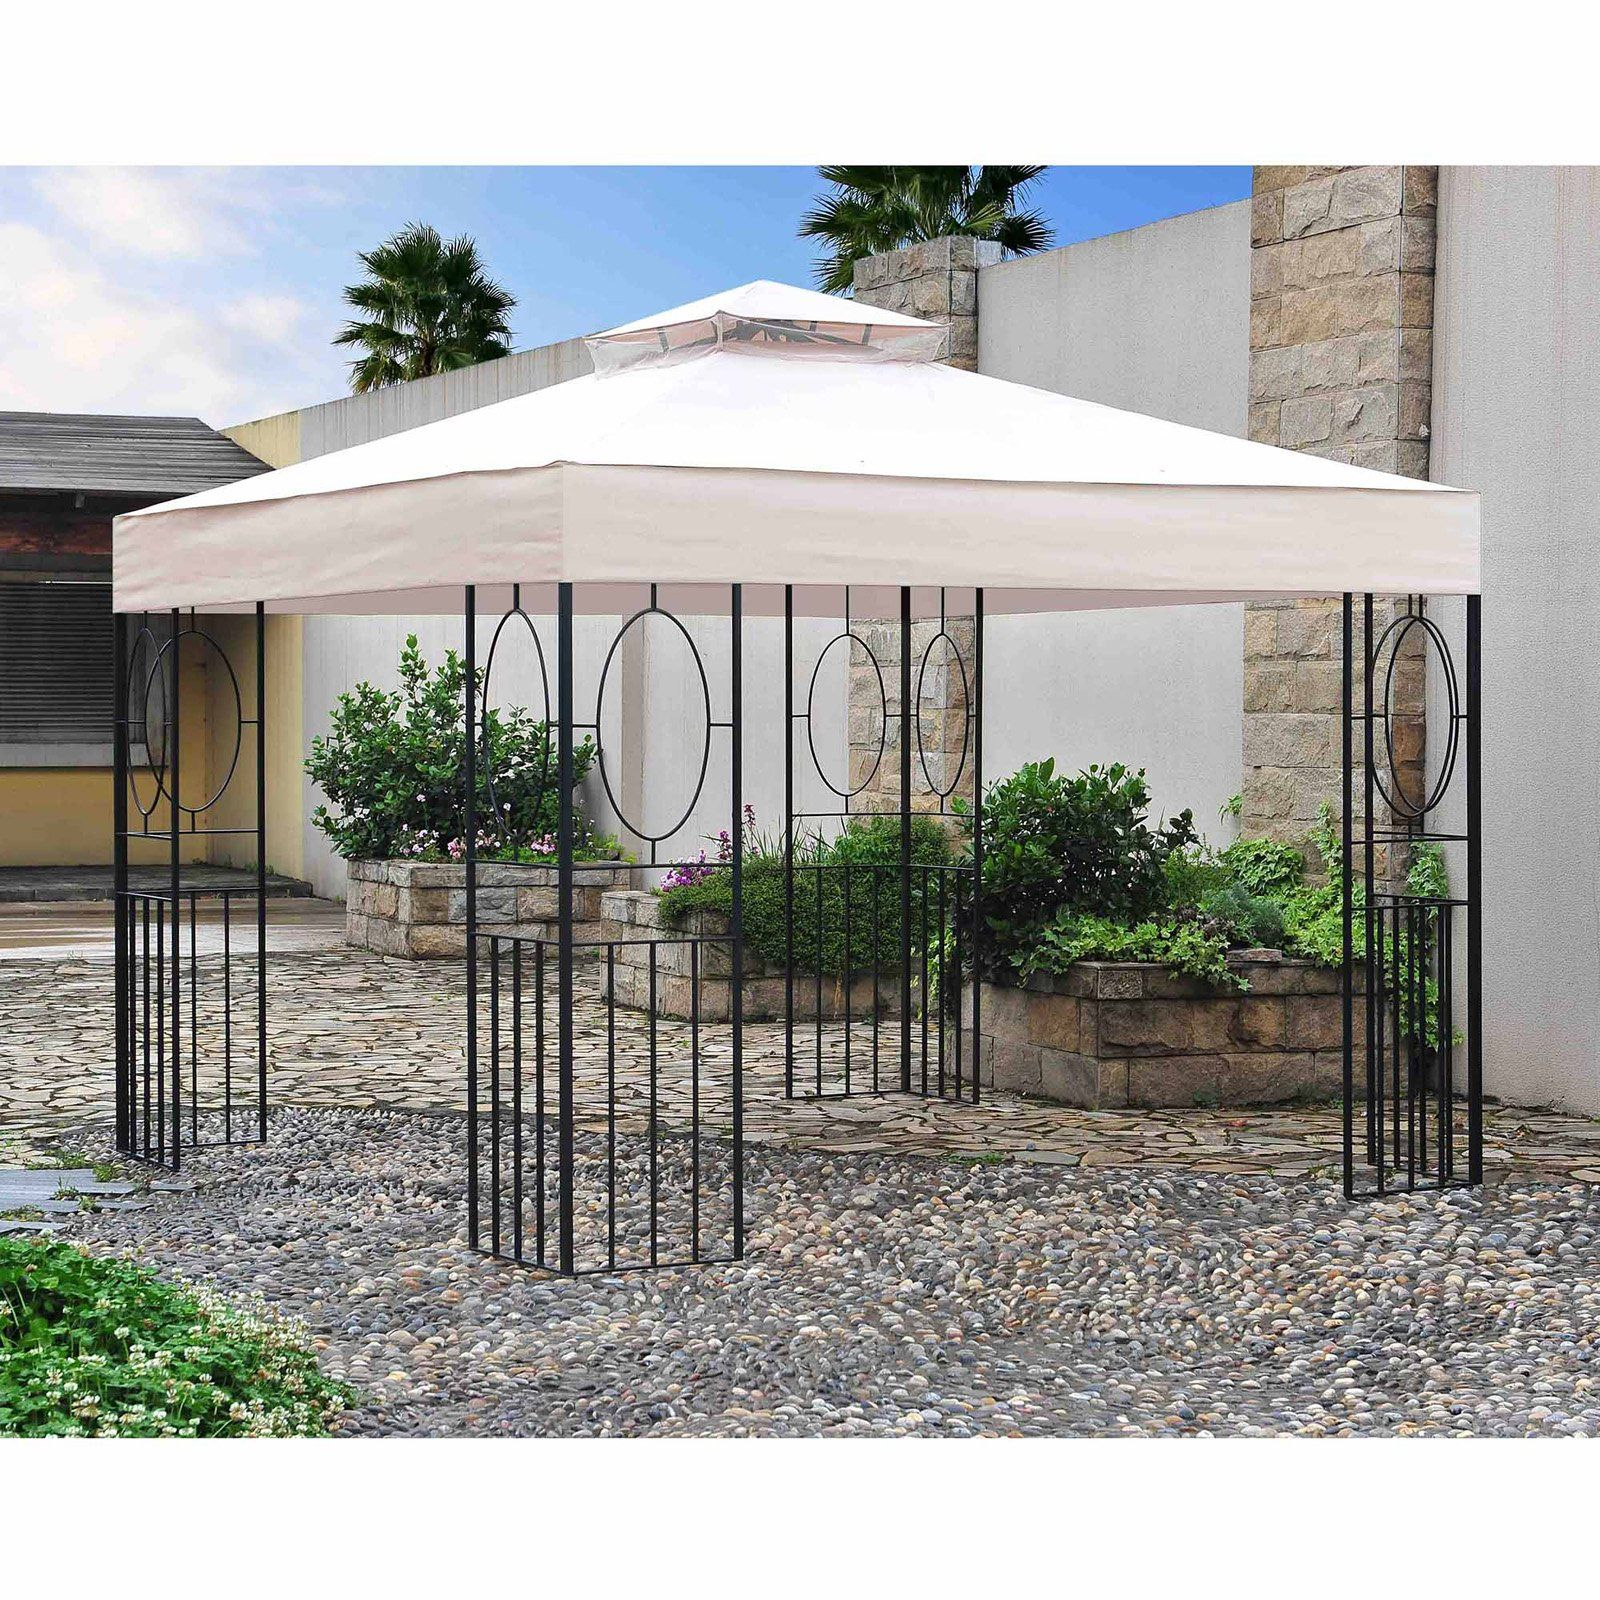 Sunjoy 10 x 10 ft. Easy Setup Gazebo - 110101035 | Products | Pinterest